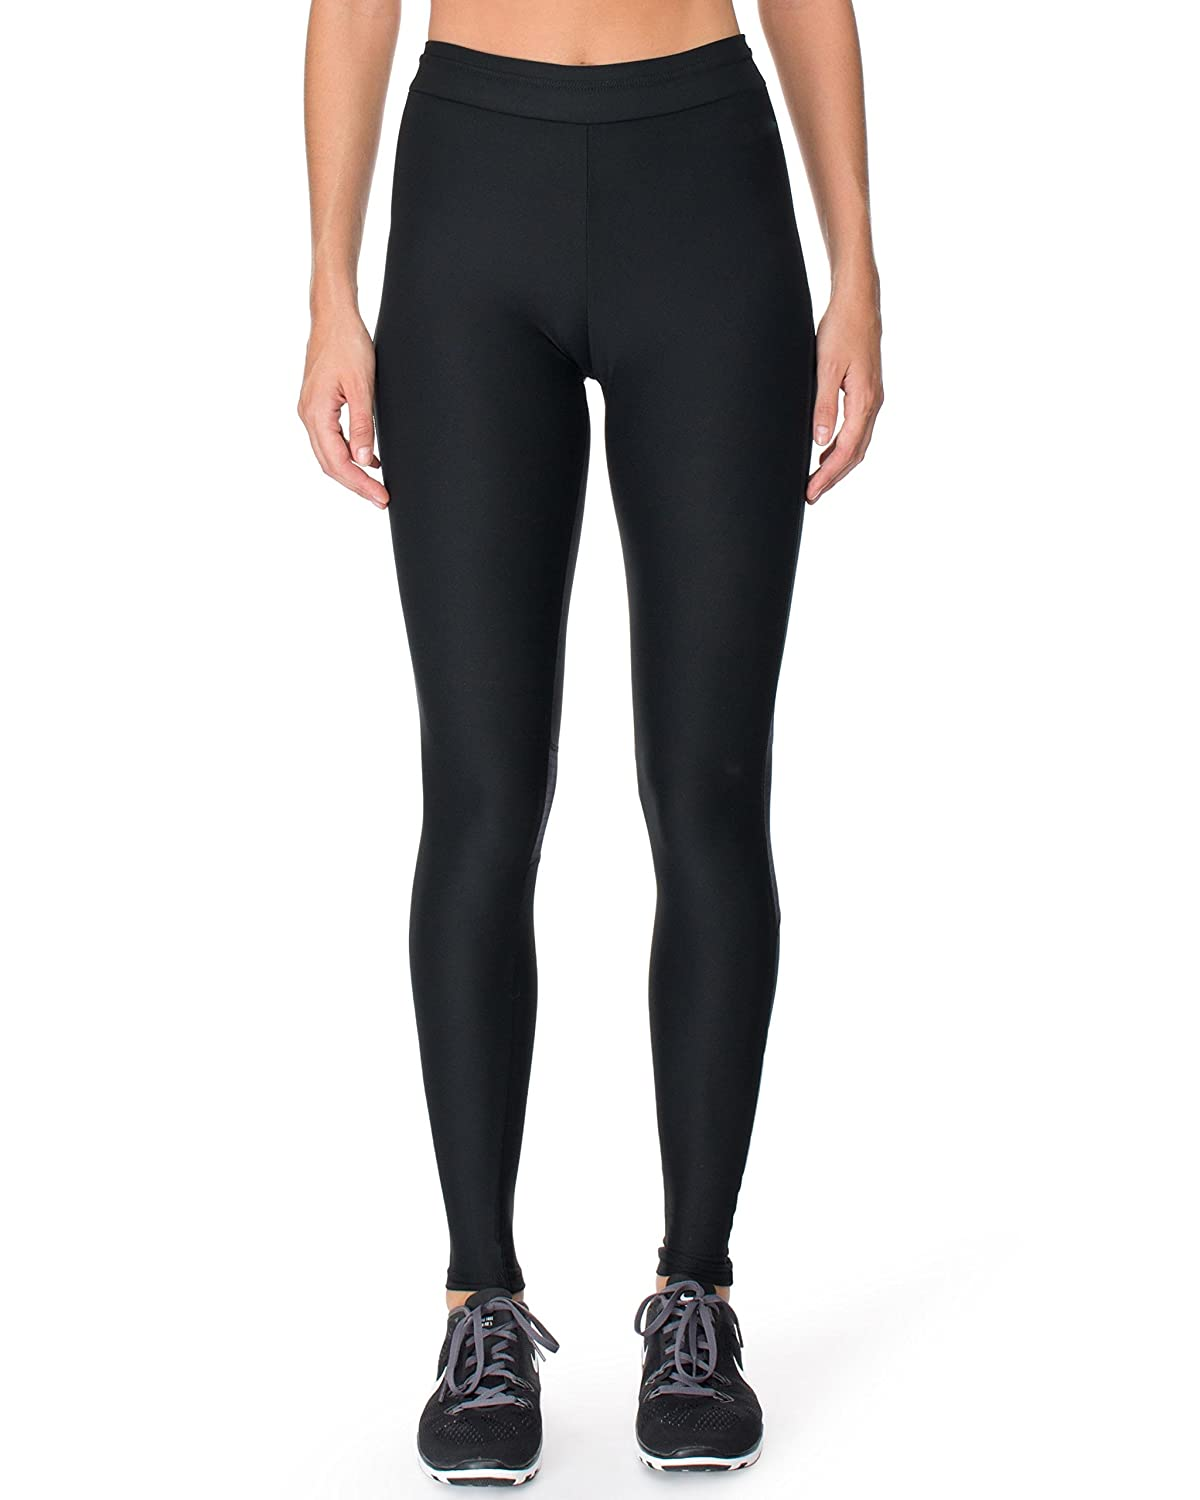 29caf60cd6f Speed Compression Full Skin Tights Plain Dri-Fit Base Layer for Sports